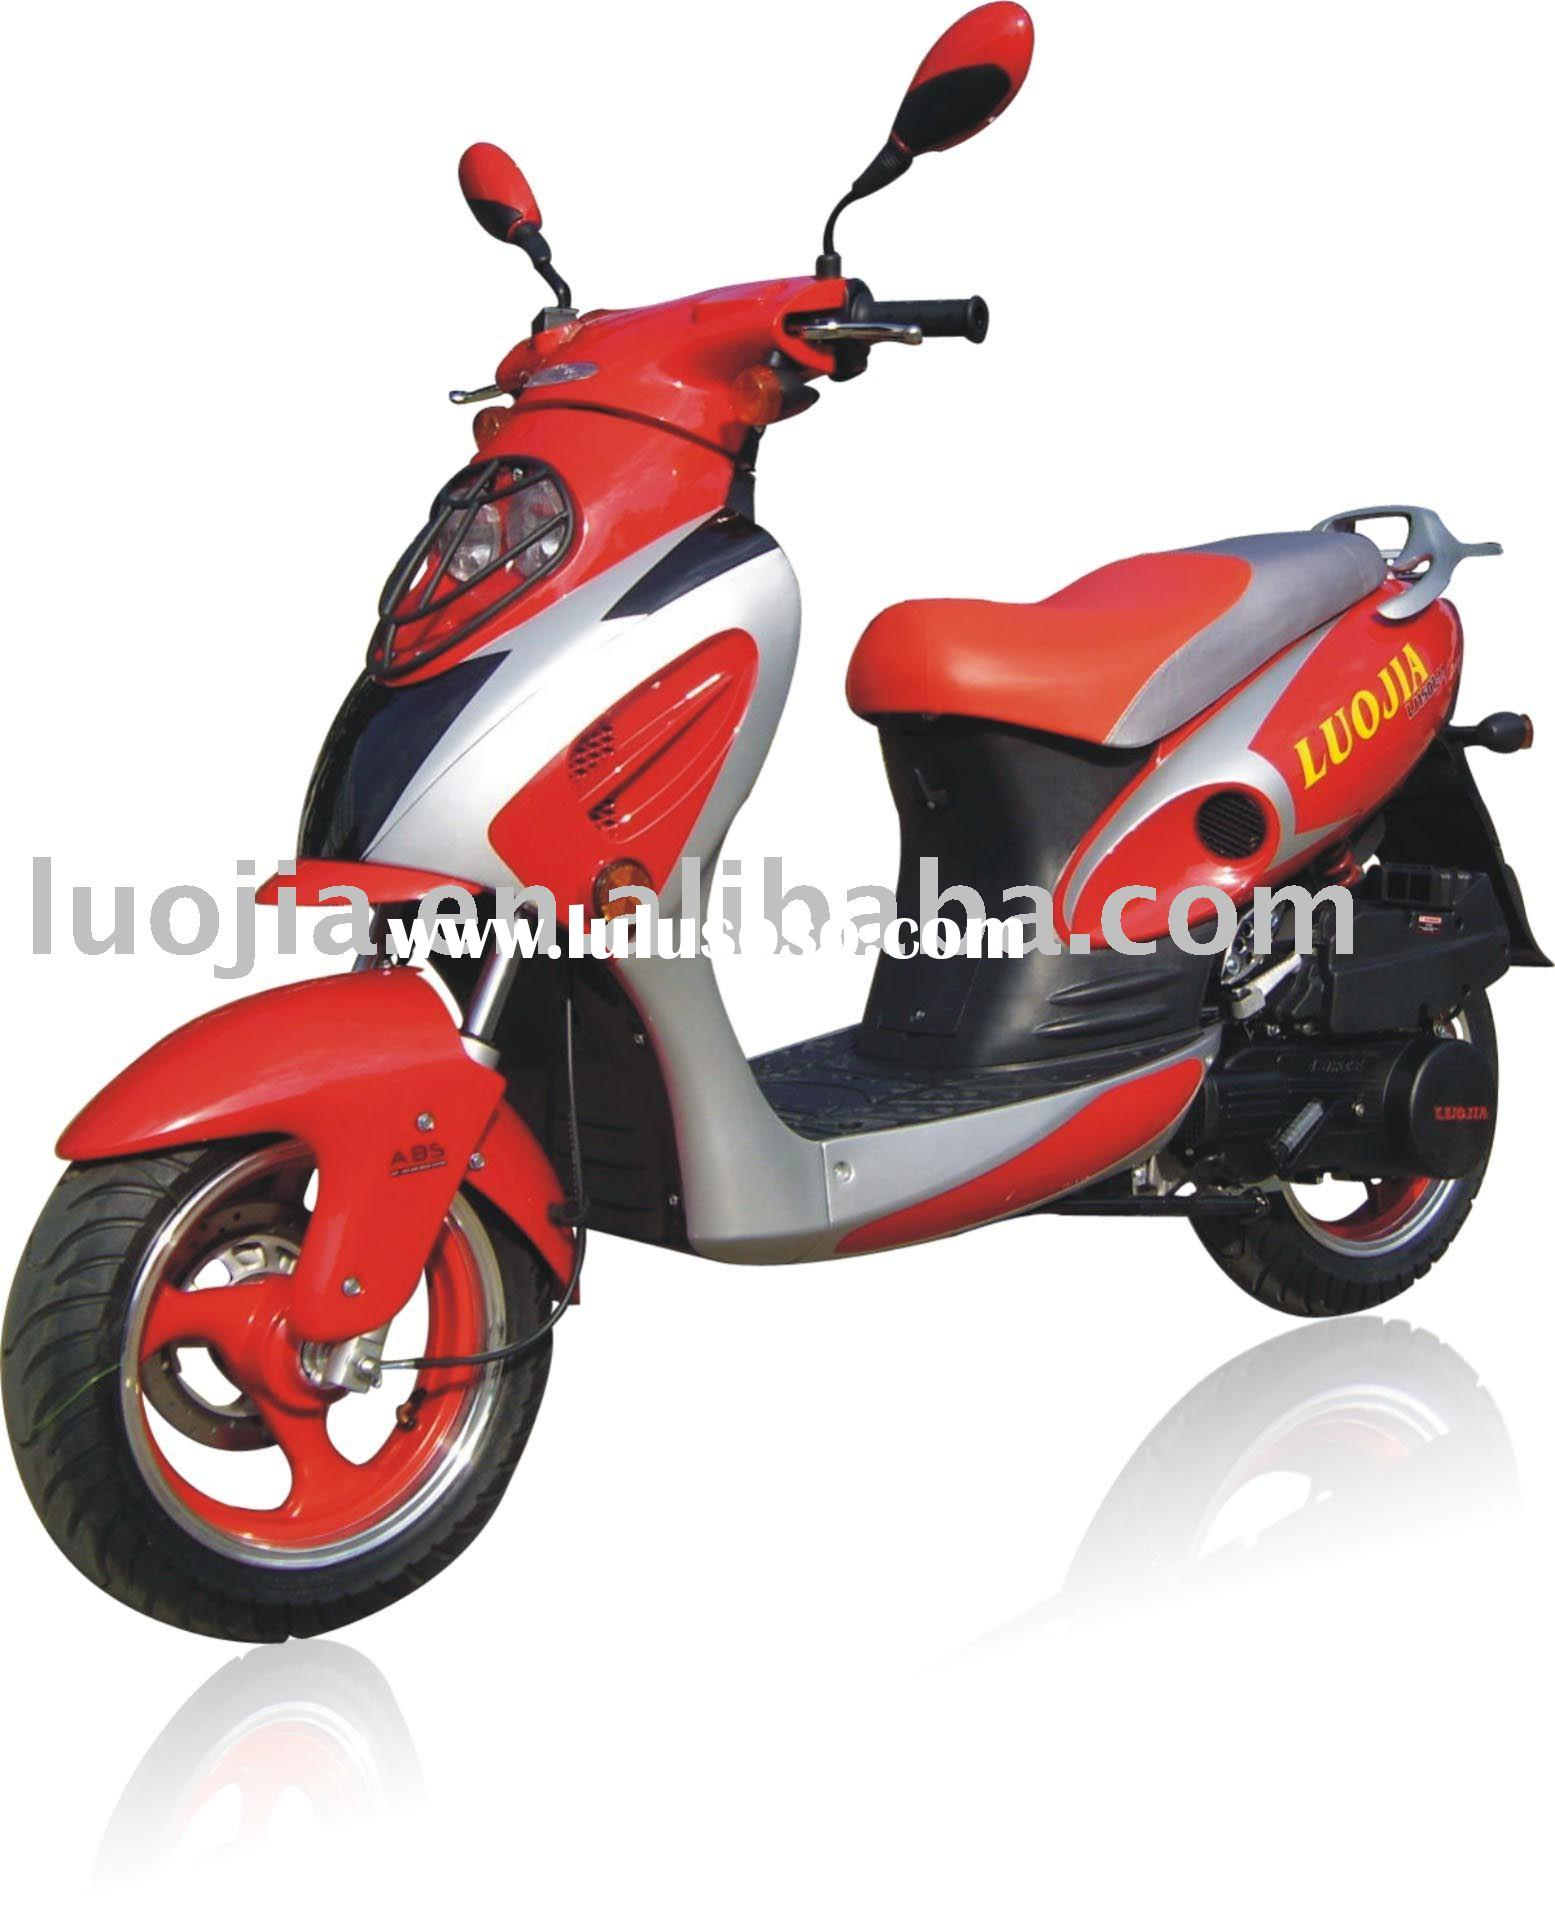 125cc Gas Motor Senior Scooter LJ125T-11